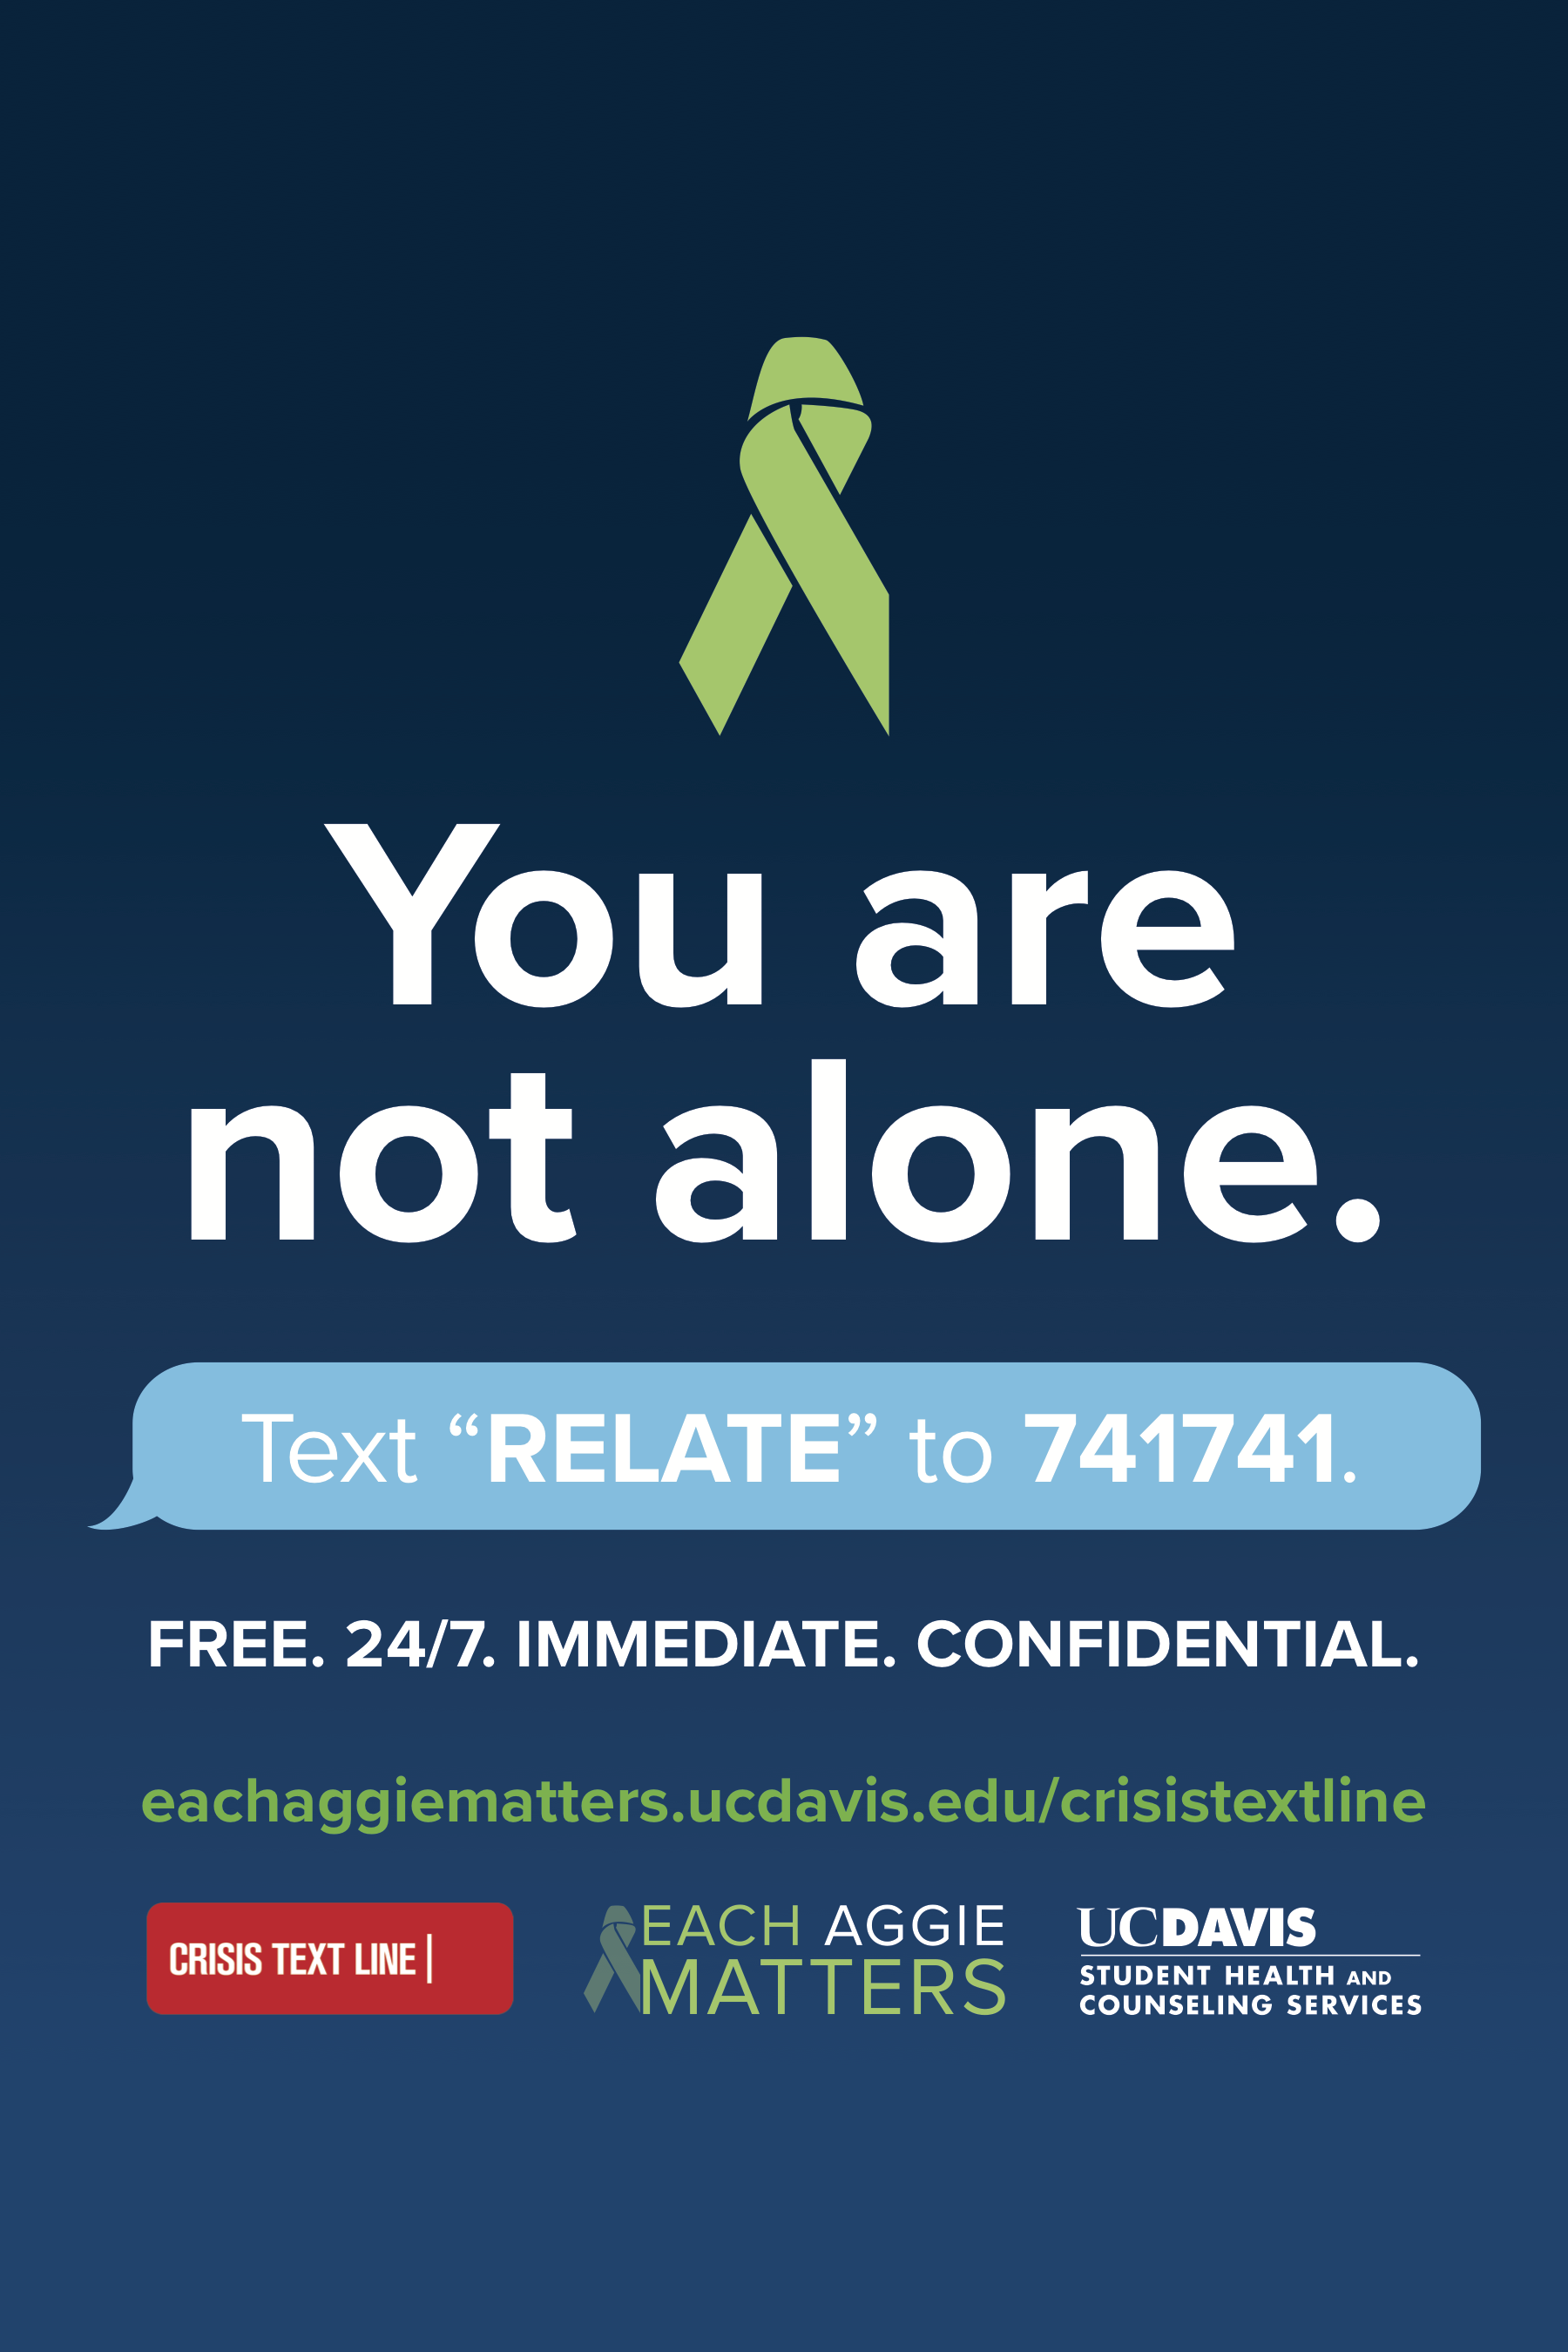 Crisis Text Line Toolkit   Each Aggie Matters